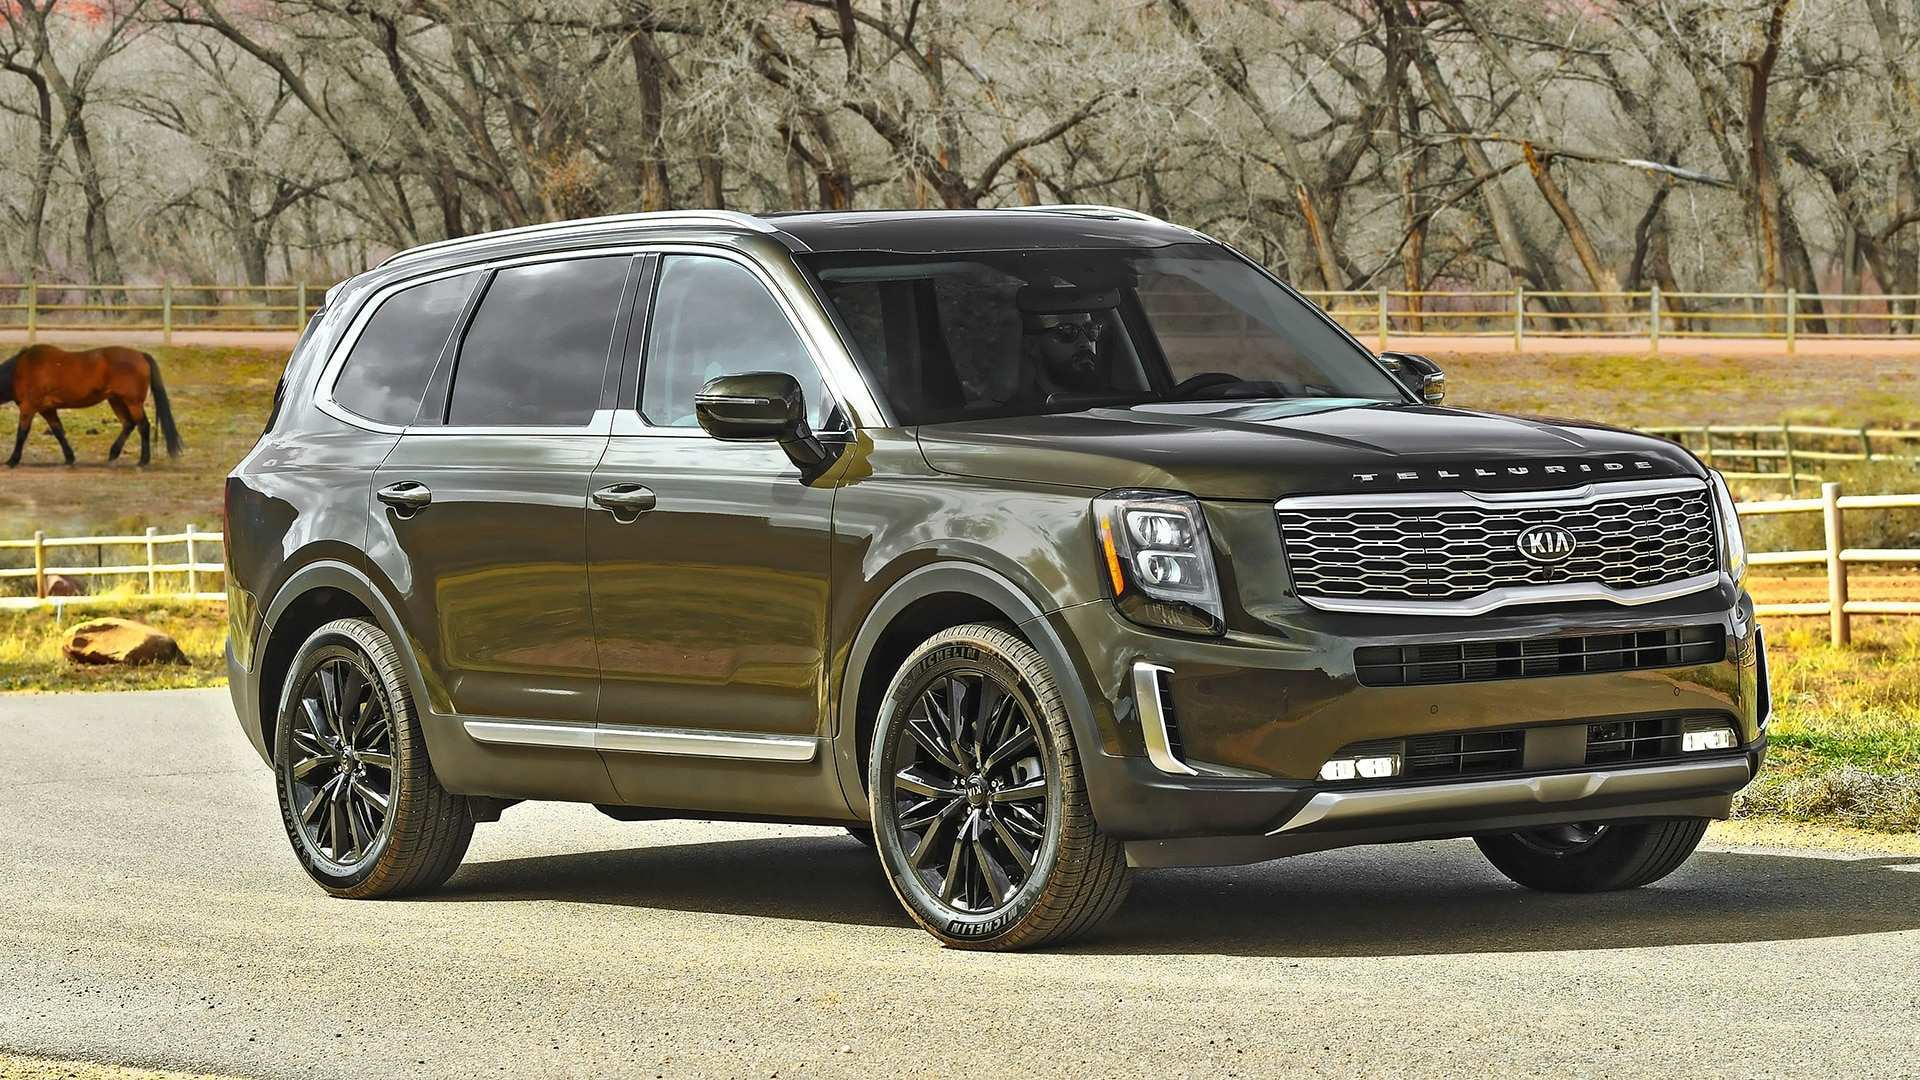 92 All New 2020 Kia Telluride Youtube Concept with 2020 Kia Telluride Youtube